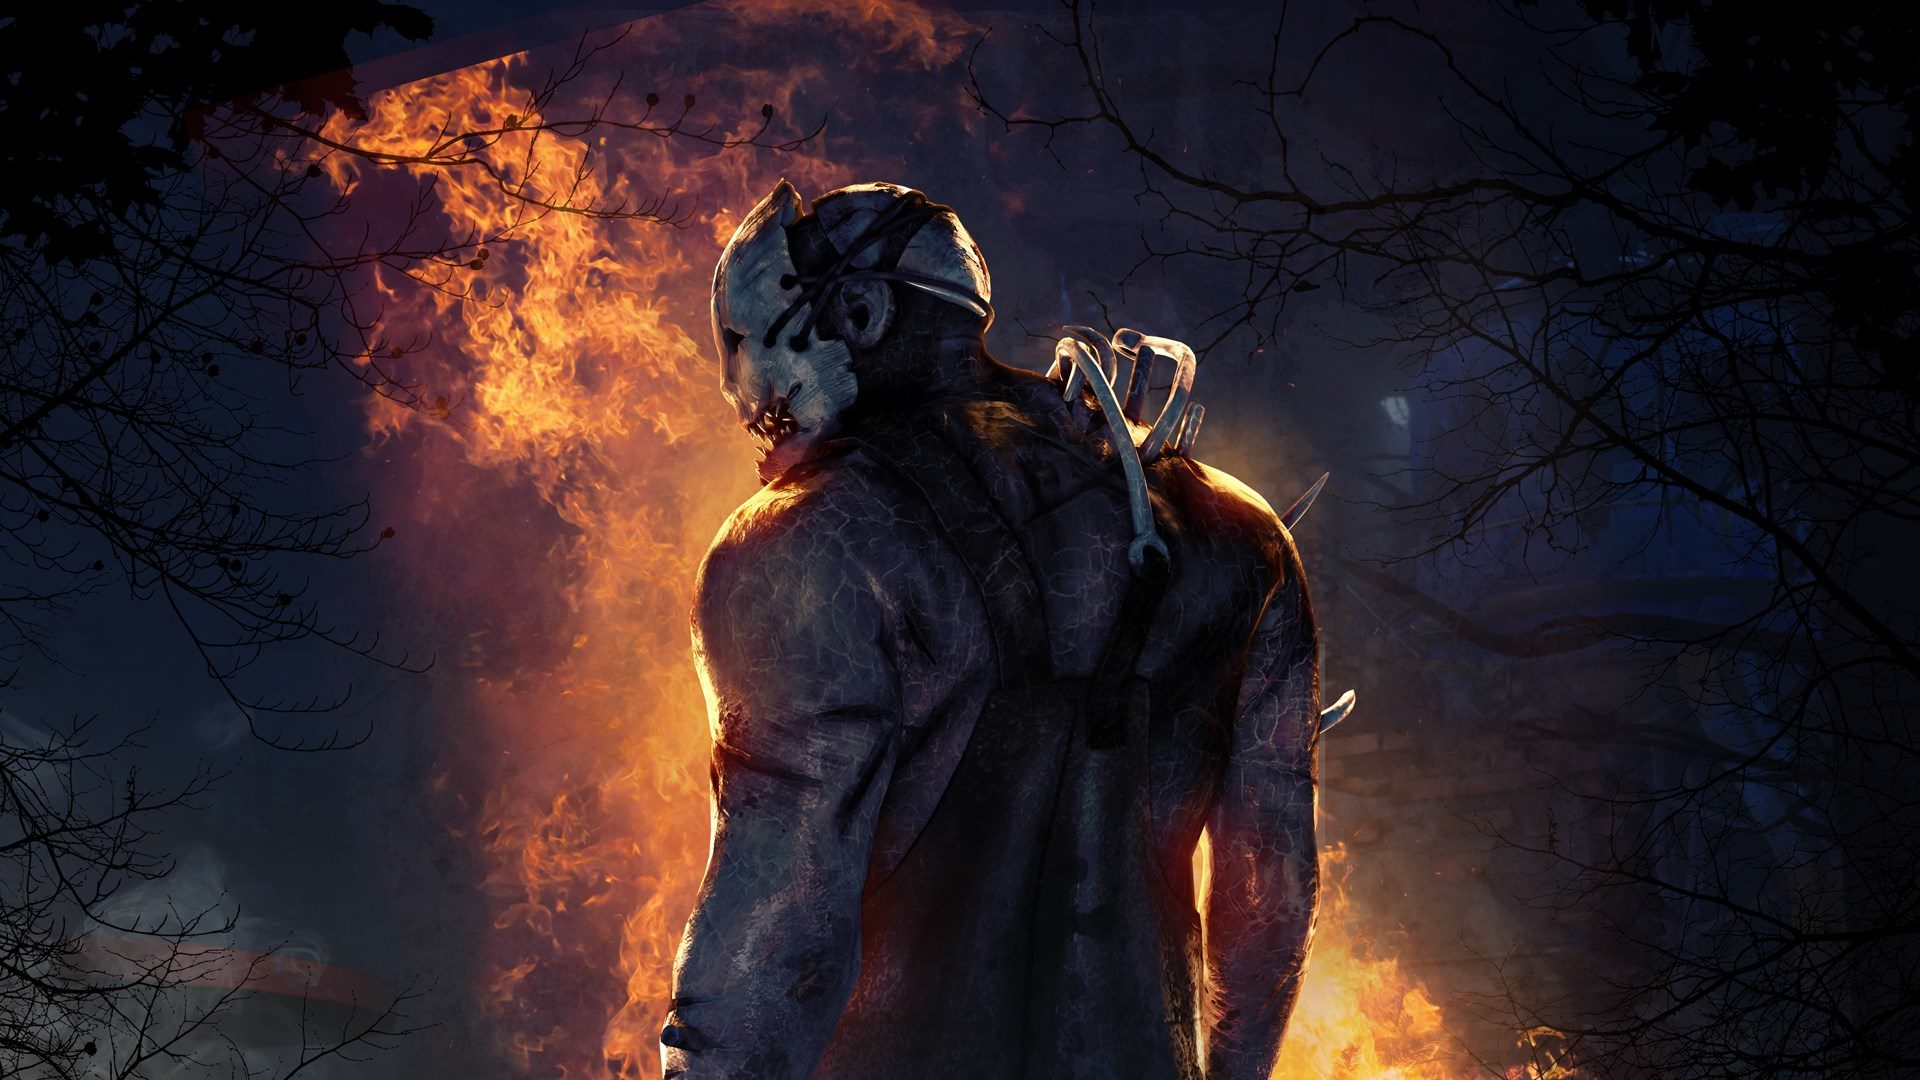 Dead by Daylight: How to Become a Ruthless Killer